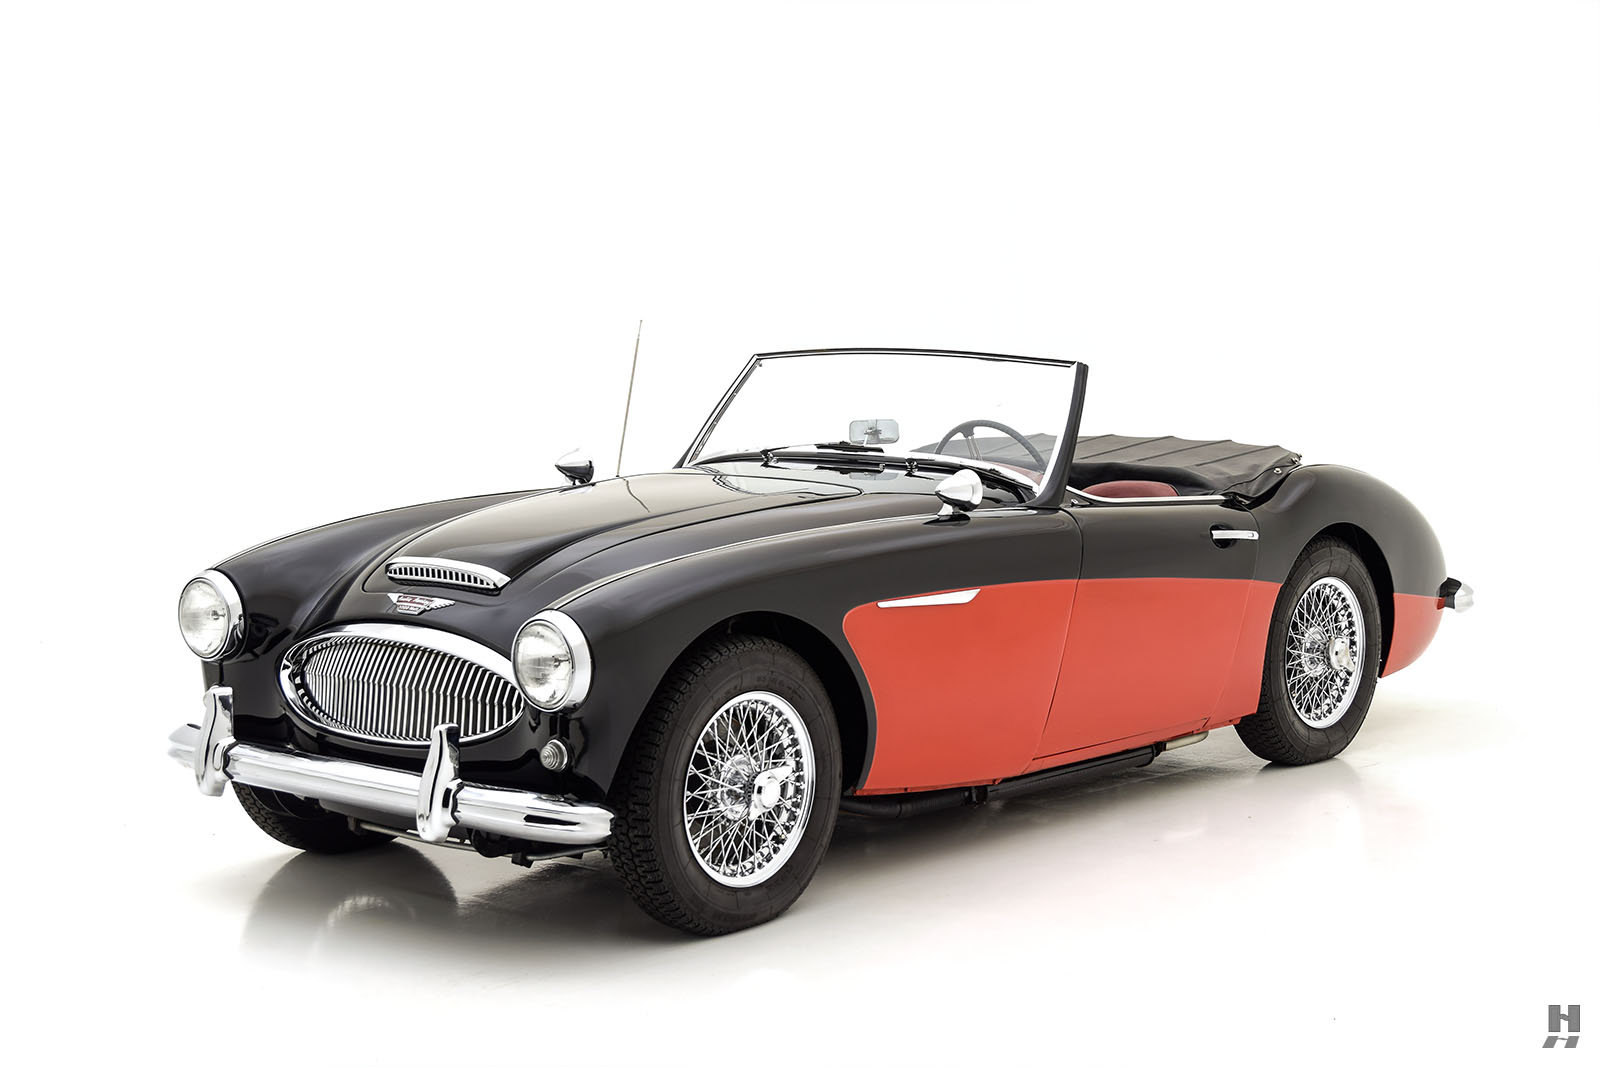 1962 AUSTIN HEALEY 3000 MKII ROADSTER For Sale (picture 1 of 6)